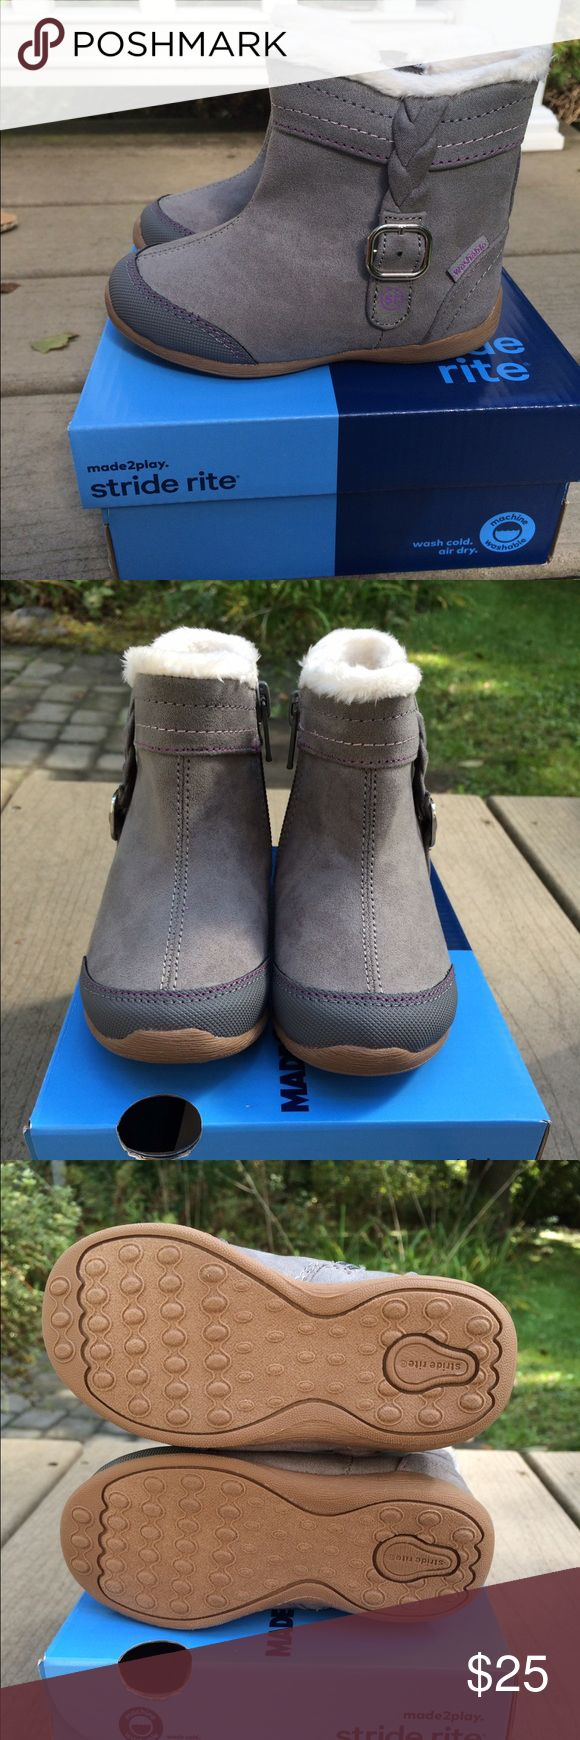 NEW in box Stride Ride Boots - Toddler Size 6 Brand new in box, size 6 (toddler) Stride Rite Boots (Marjorie, Grey). I grabbed the wrong size for my daughter and I'm unable to return them (no outlet near me since they were purchased while on vacation). These are MACHINE WASHABLE! Available online for ~$40. Asking $25. Ships next business day! Stride Rite Shoes Boots